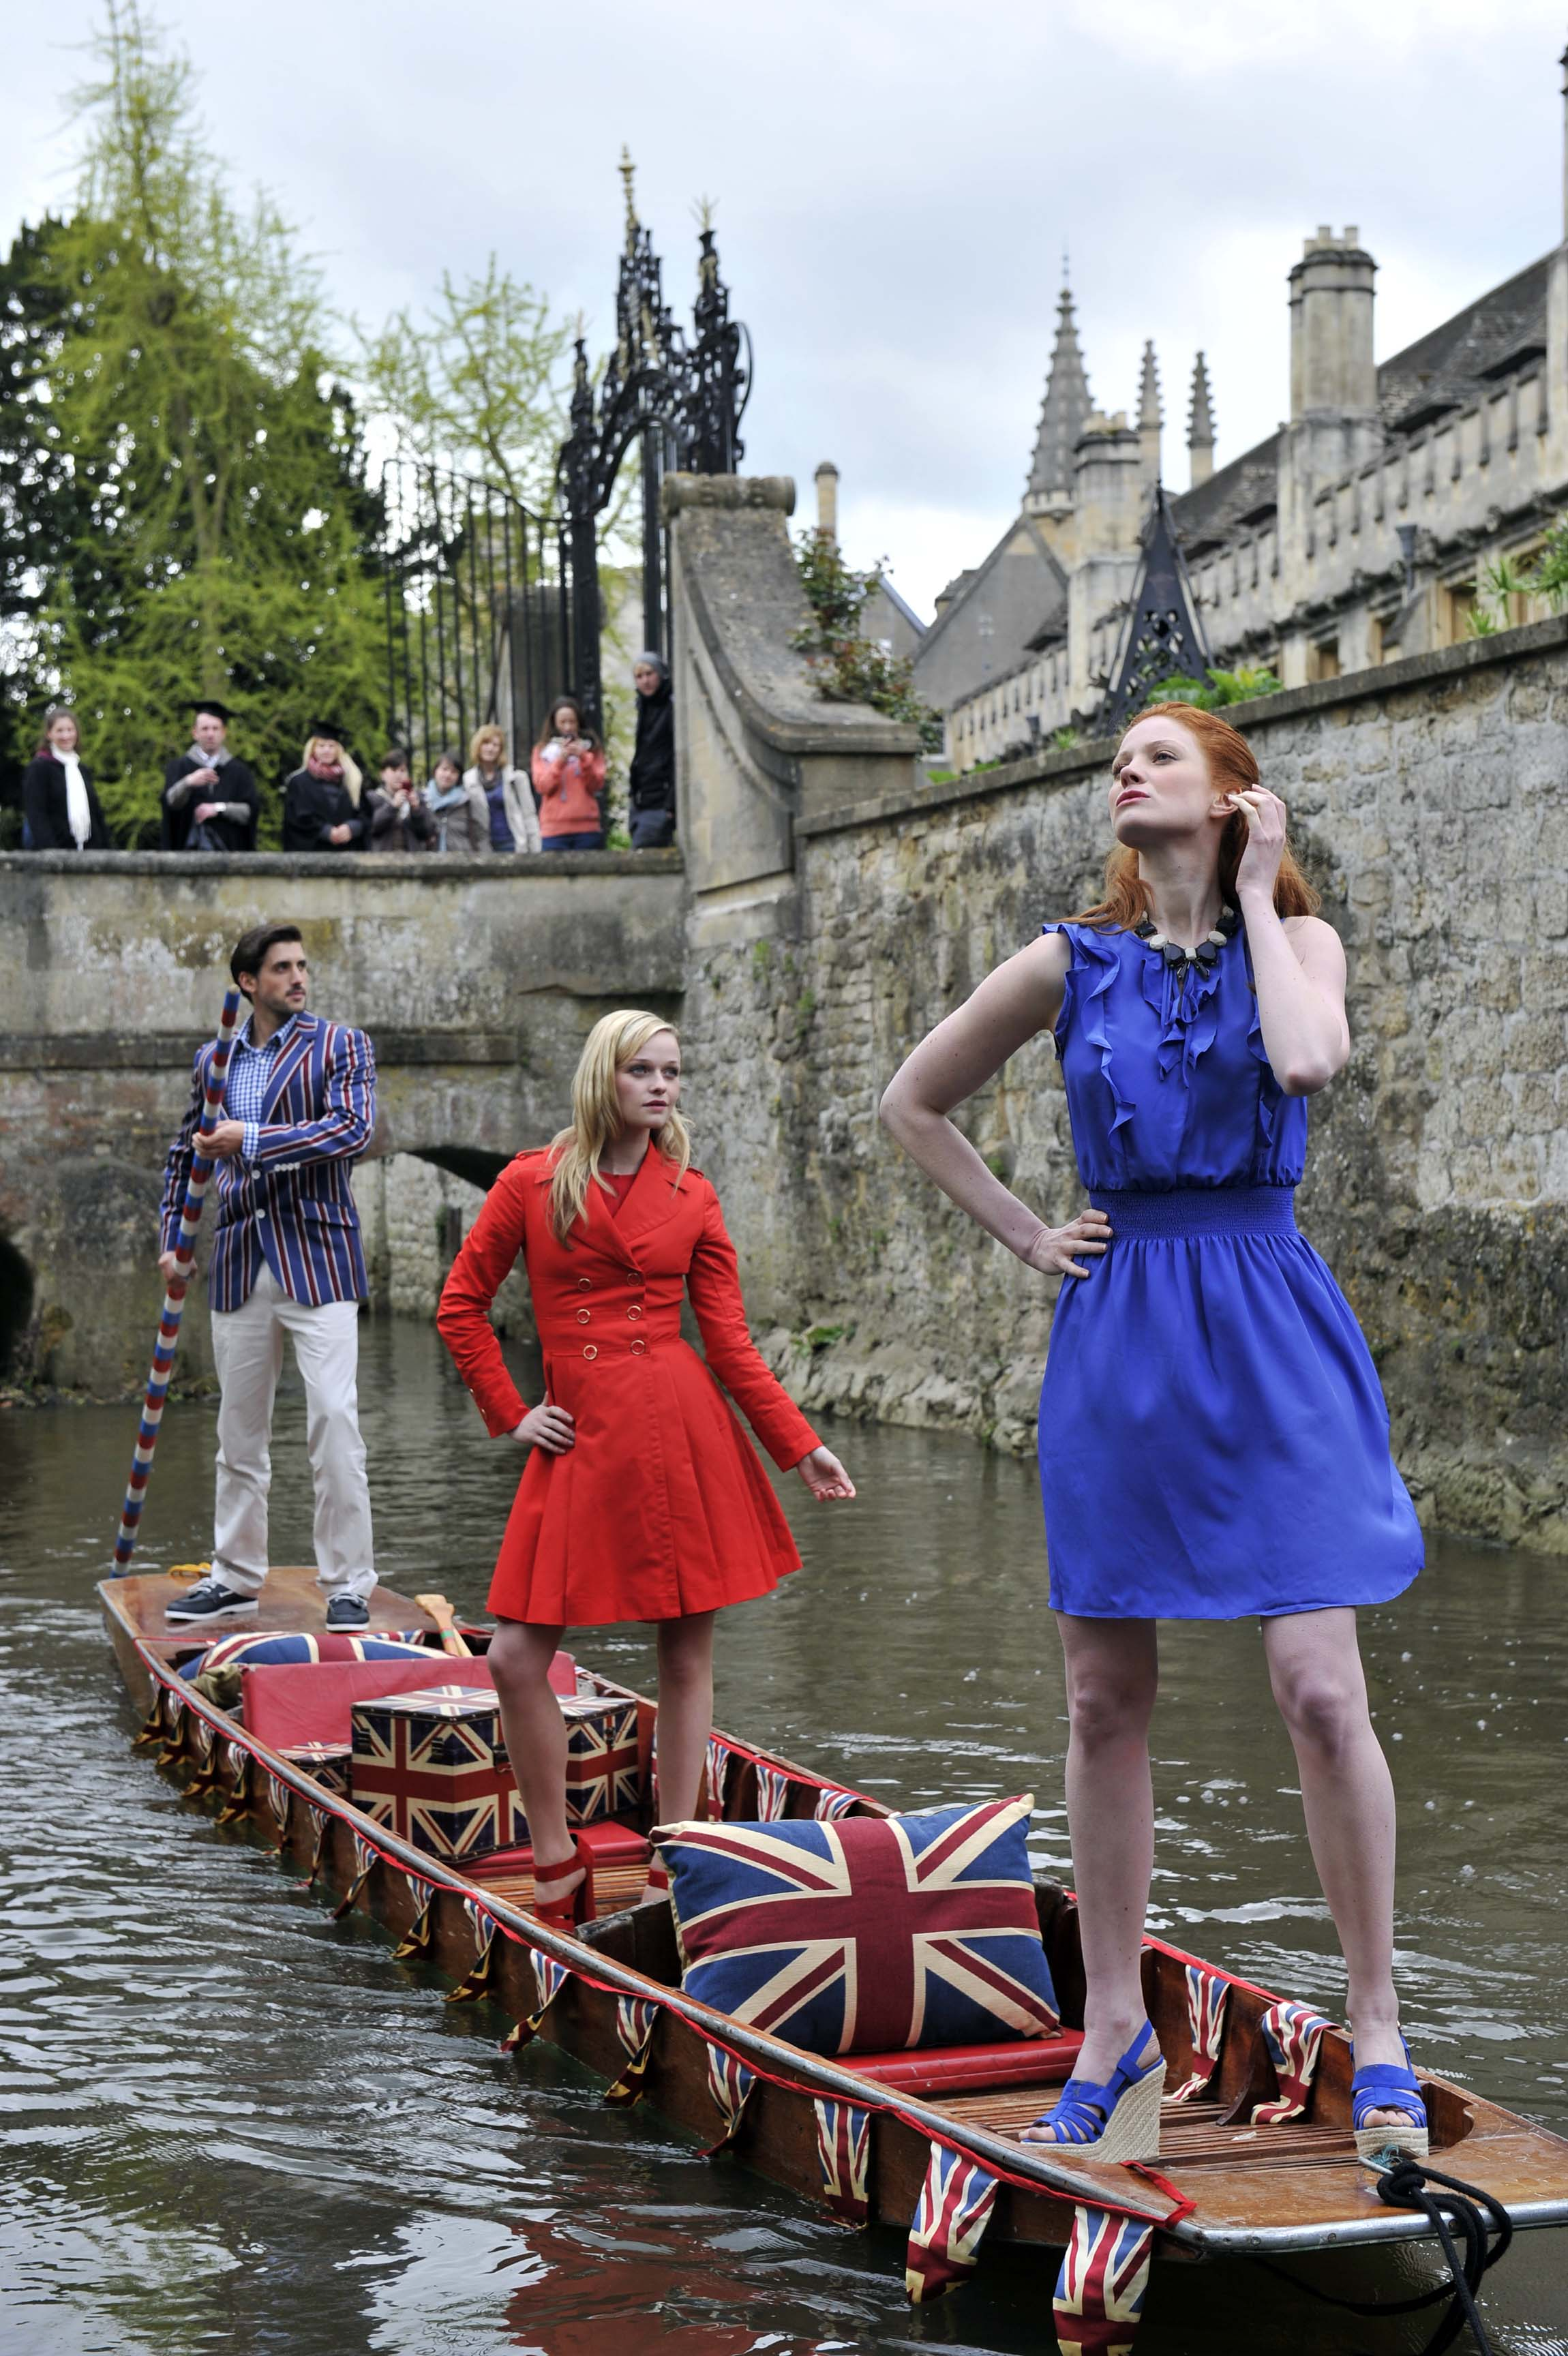 Models in designer clothes stand on a punt on a river in Oxford with people watching from a bridge